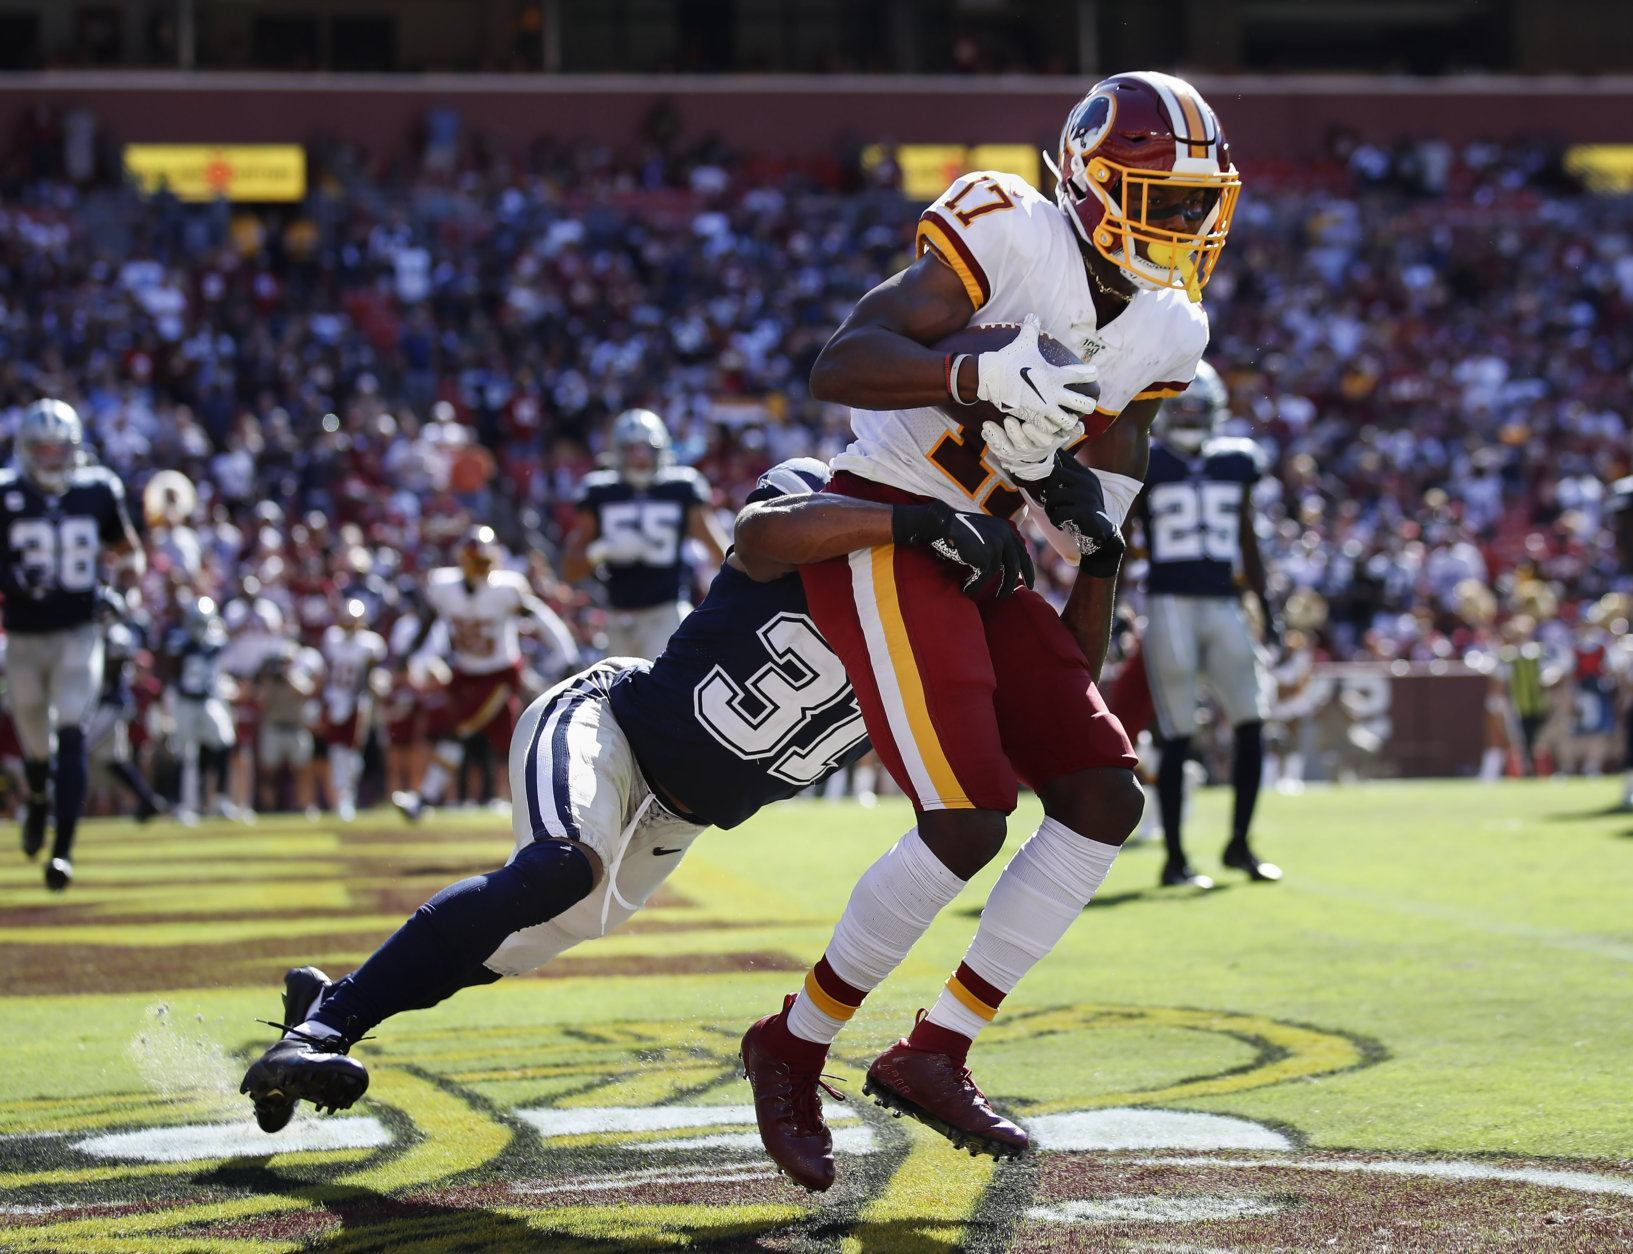 "<p><b><i>Cowboys 31</i></b><br /> <b><i>Redskins 21</i></b></p> <p>Happy Birthday, Terry McLaurin. What better way to celebrate 24 than with another five catch, one touchdown performance in a loss to a division rival?</p> <p>And before you crown the Cowboys, consider their &#8220;<a href=""https://deadspin.com/the-cowboys-look-fun-as-hell-1838044163?utm_medium=socialflow&amp;utm_source=deadspin_facebook&amp;utm_campaign=socialflow_deadspin_facebook"">fun</a>&#8221; offense just lit up the two worst teams in the division, the latter without its best defensive lineman and two corners. Wake me up when they face the Packers, Vikings and Patriots defenses.</p>"